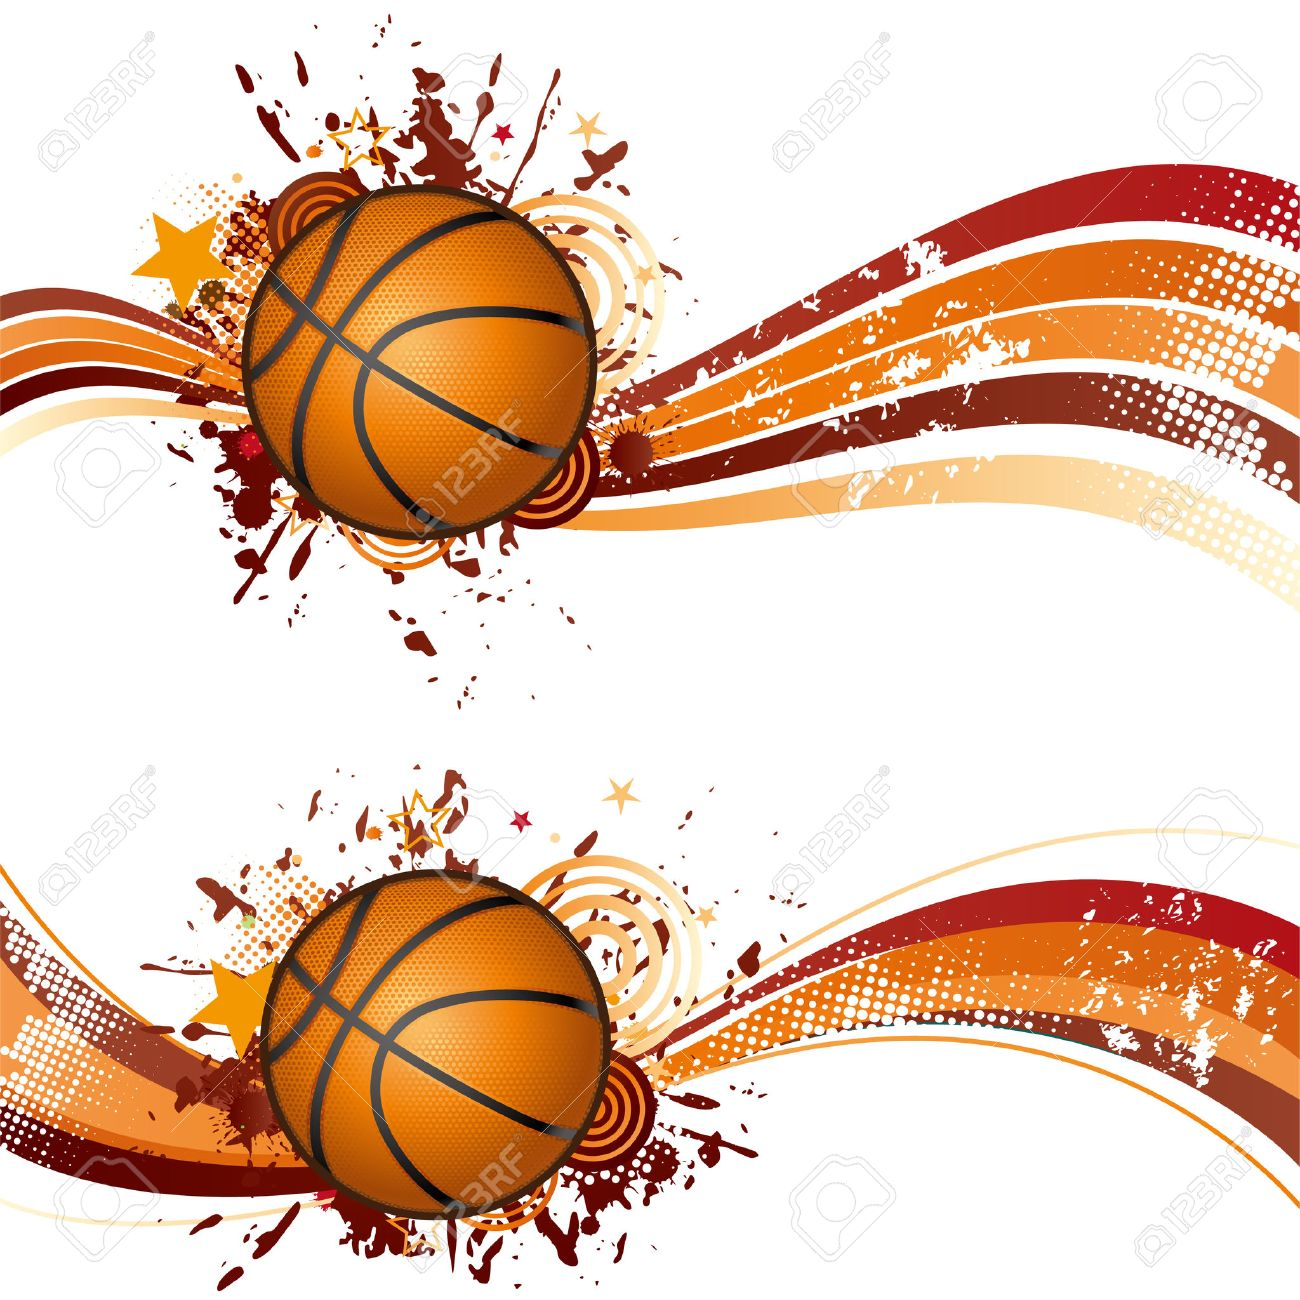 basketball design element royalty free cliparts vectors and stock